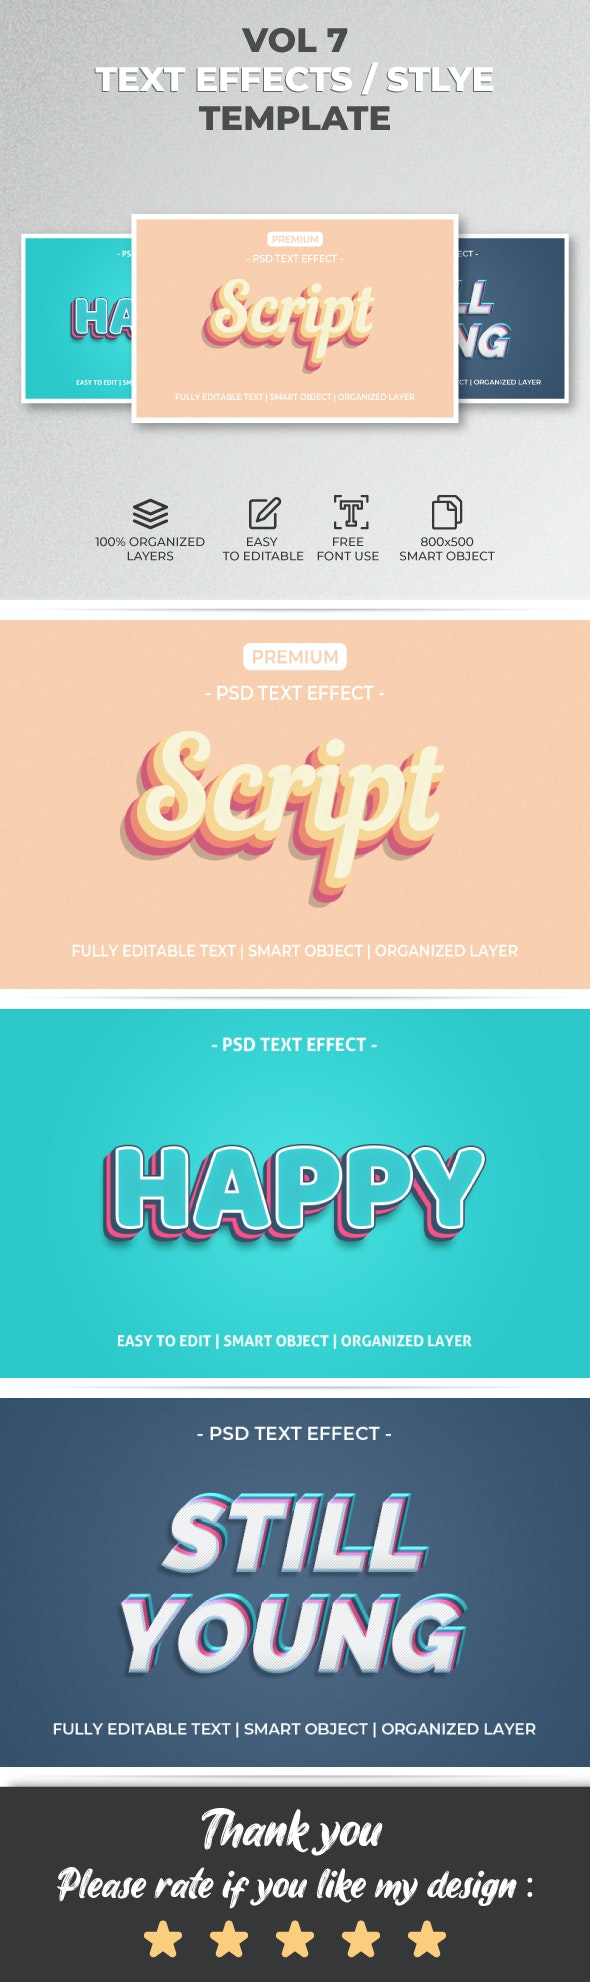 Text Effect Style Template Style Vol.7 - Text Effects Actions